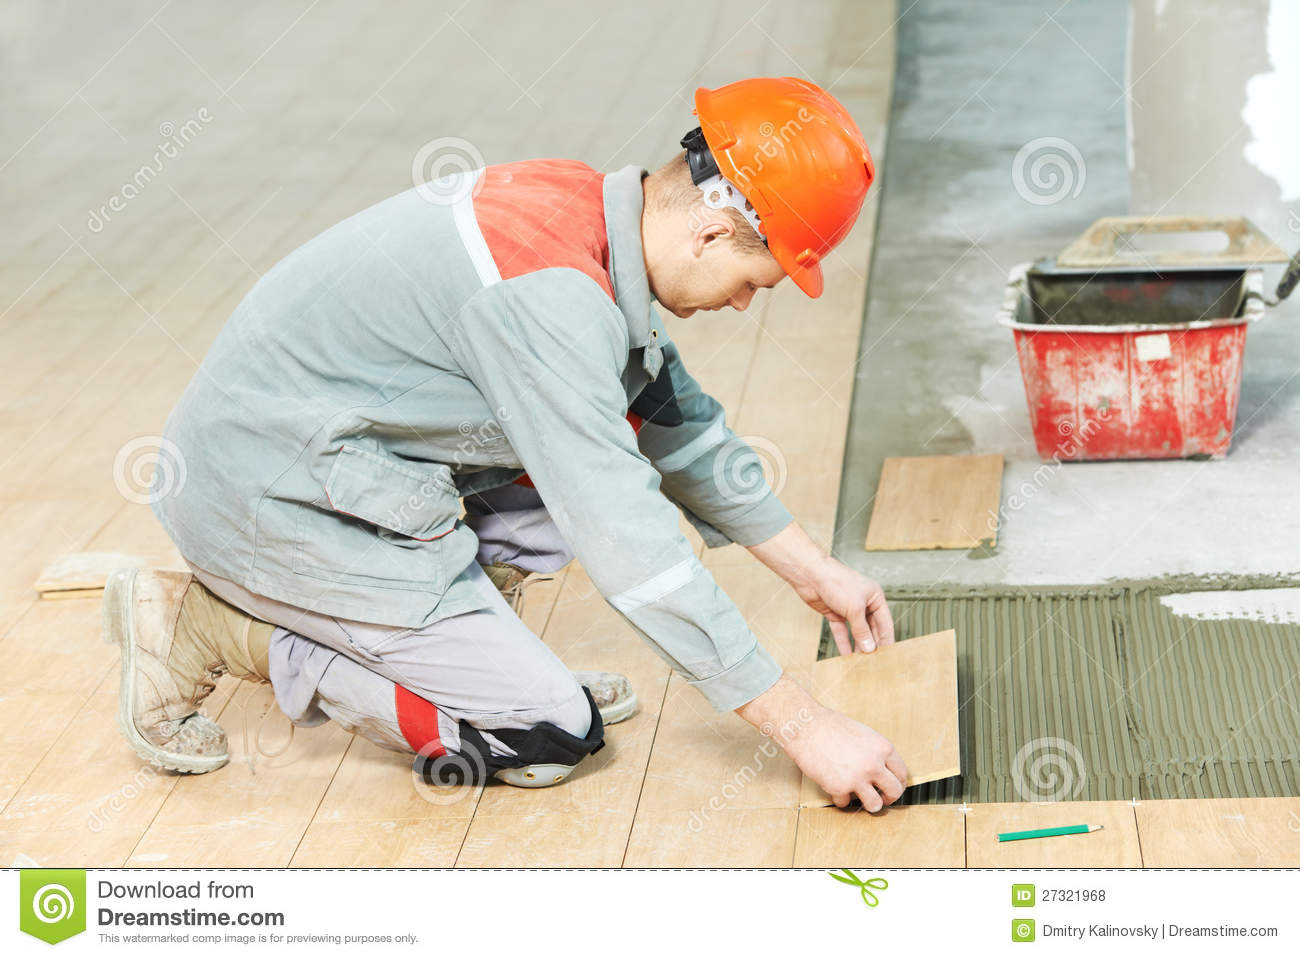 Tiler at industrial floor tiling renovation work stock for Peinture renovation carrelage